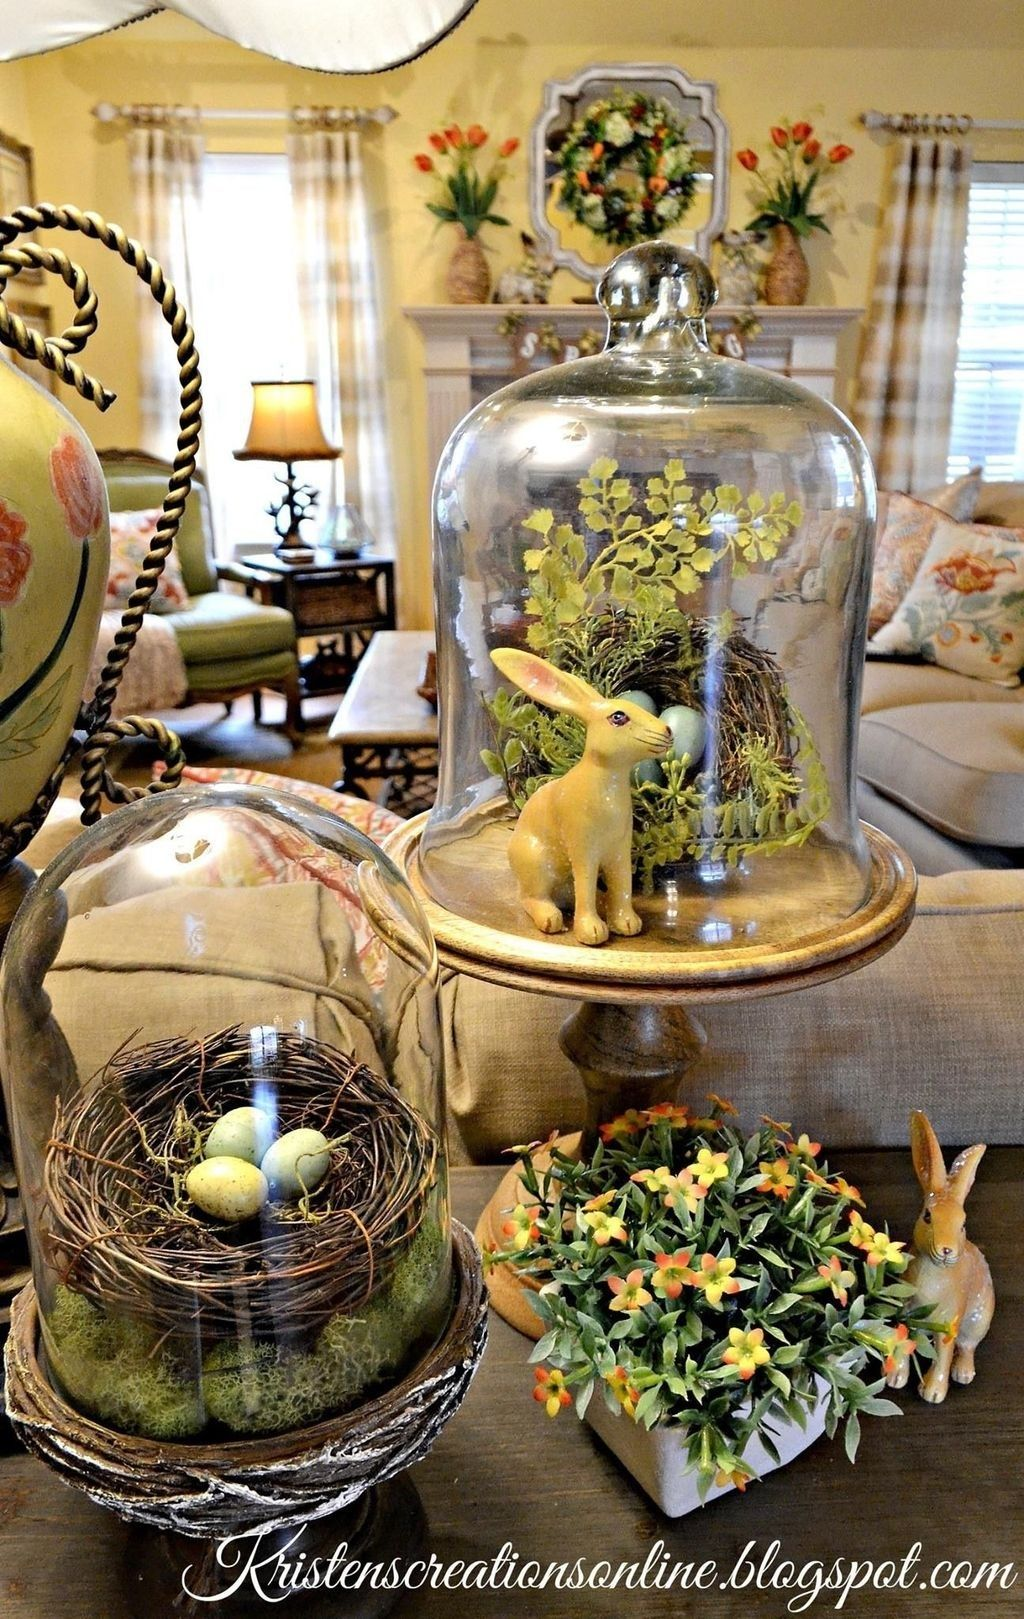 Unusual Easter Centerpieces Table Decor Ideas40 Easter Table Decorations Easter Centerpieces Table Decorations